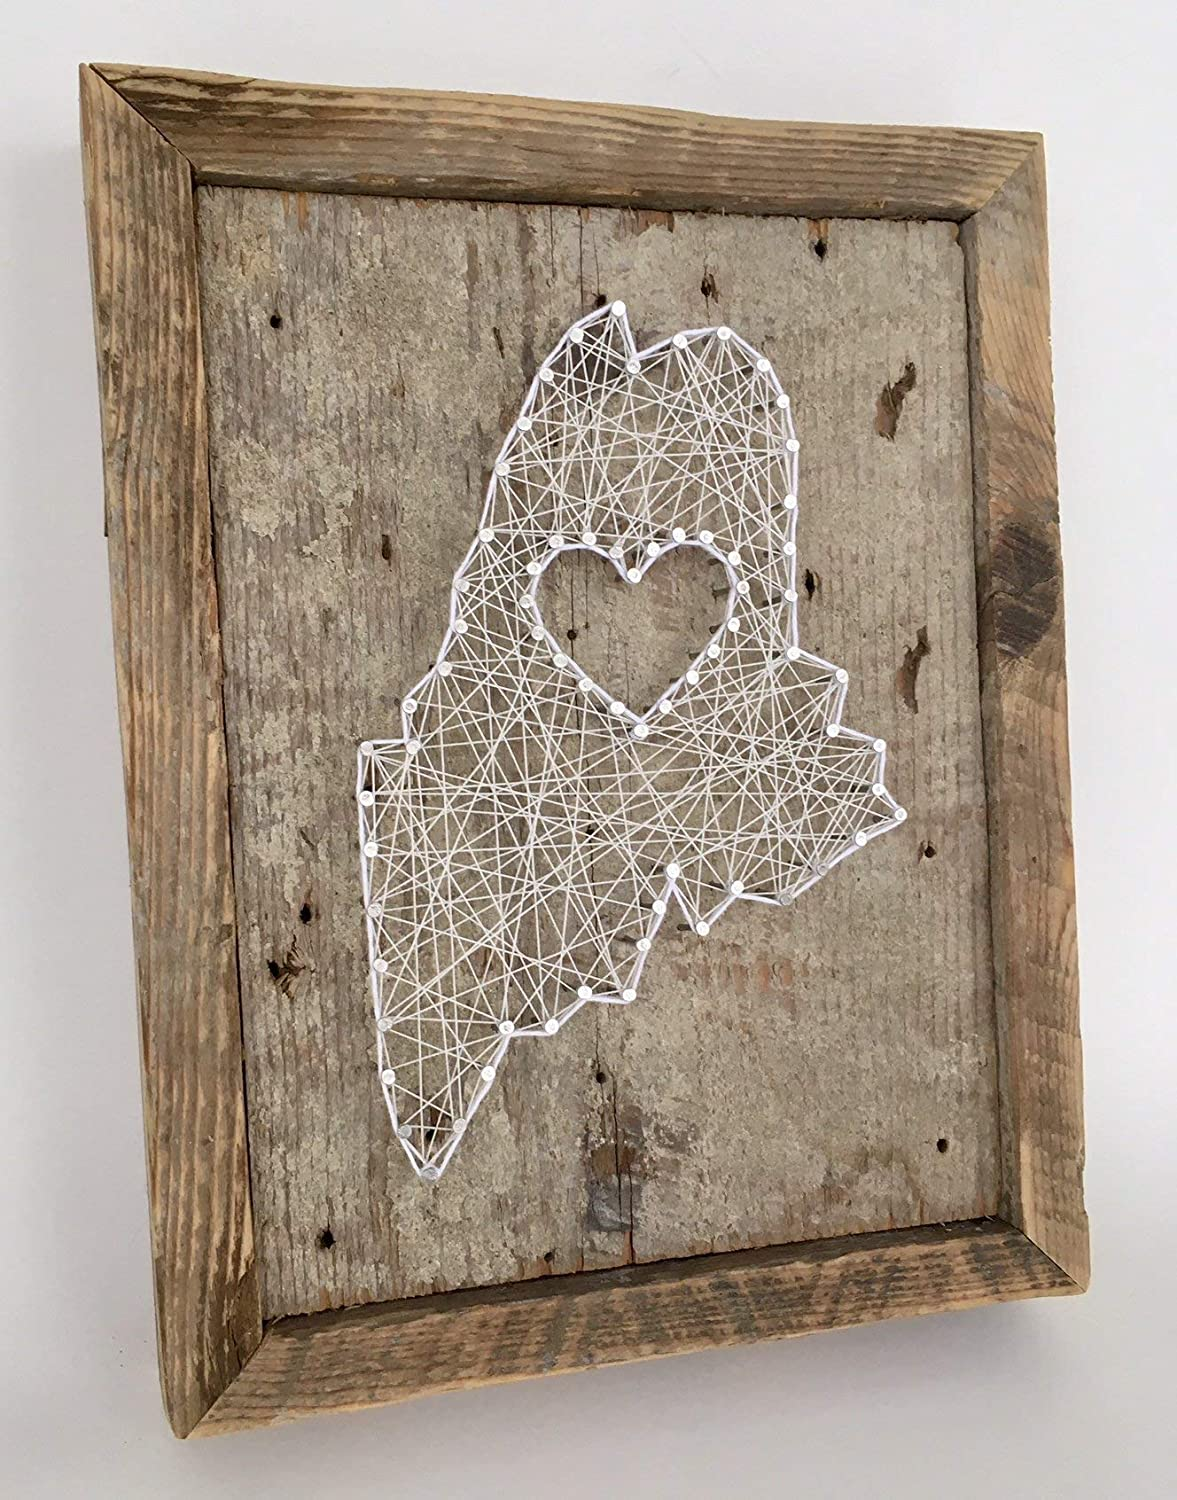 Framed Maine love reclaimed wooden string art sign- A unique Wedding, Anniversary, Birthday, Valentine's Day, Christmas and housewarming gift. Made in Maine. Valentine' s Day